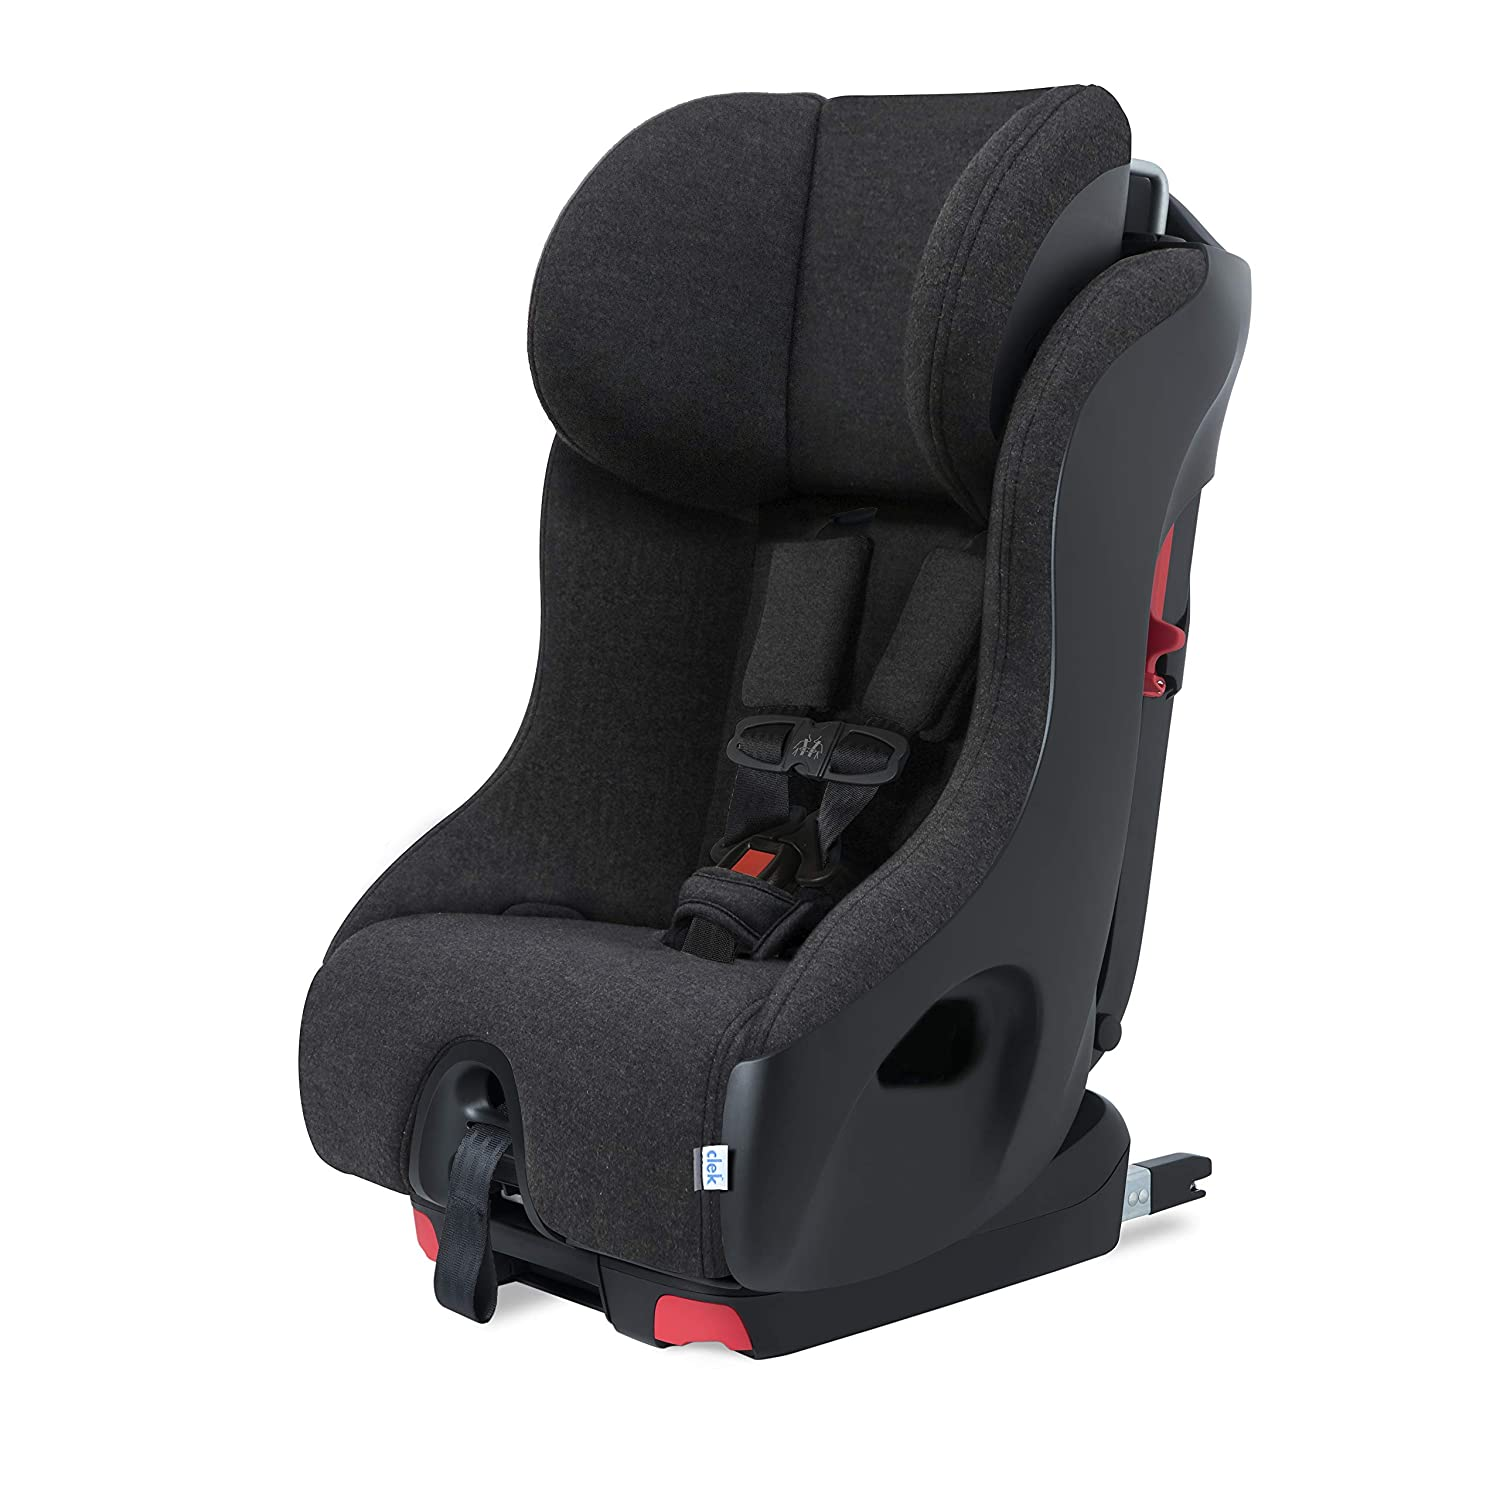 Clek Foonf Convertible Car Seat Premium Booster Seats with 5 Point Harness